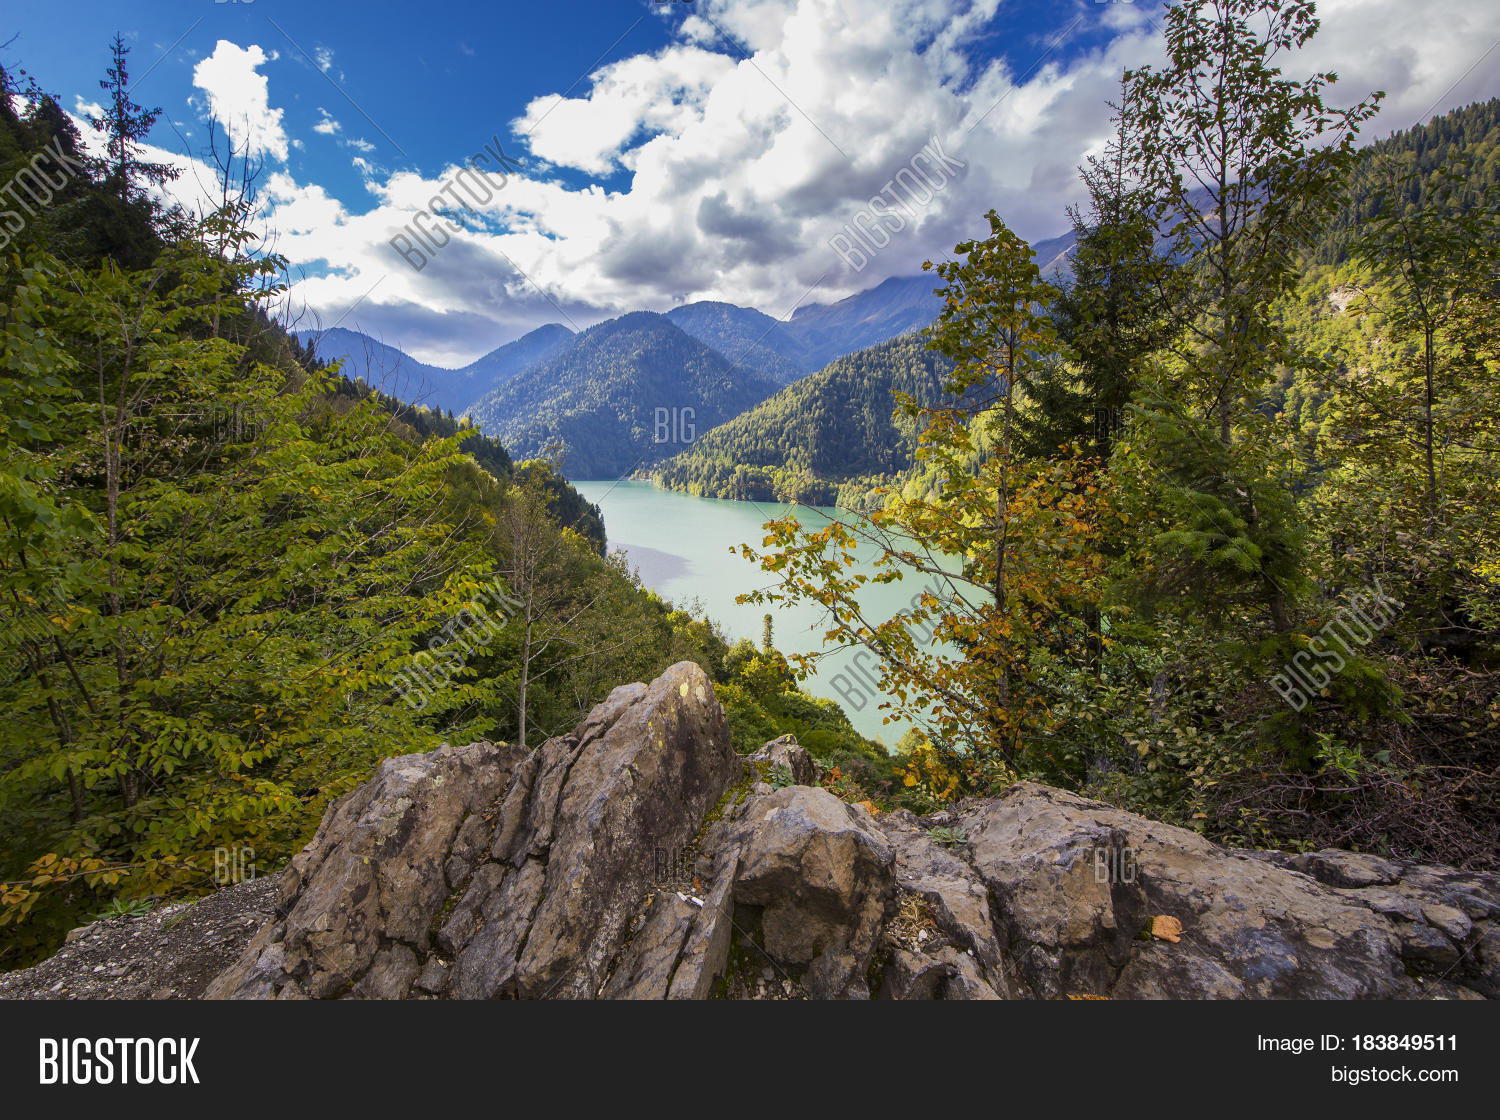 abkhazia,apsny,azure,background,beauty,blue,calm,caucasus,clouds,colorful,deep,environment,forest,green,high,hill,lake,landscape,mountains,nature,outdoor,pacification,peace,quiet,reflection,relaxing,ritsa,scene,season,serenity,sky,summer,tourism,tranquility,trees,turquoise,view,water